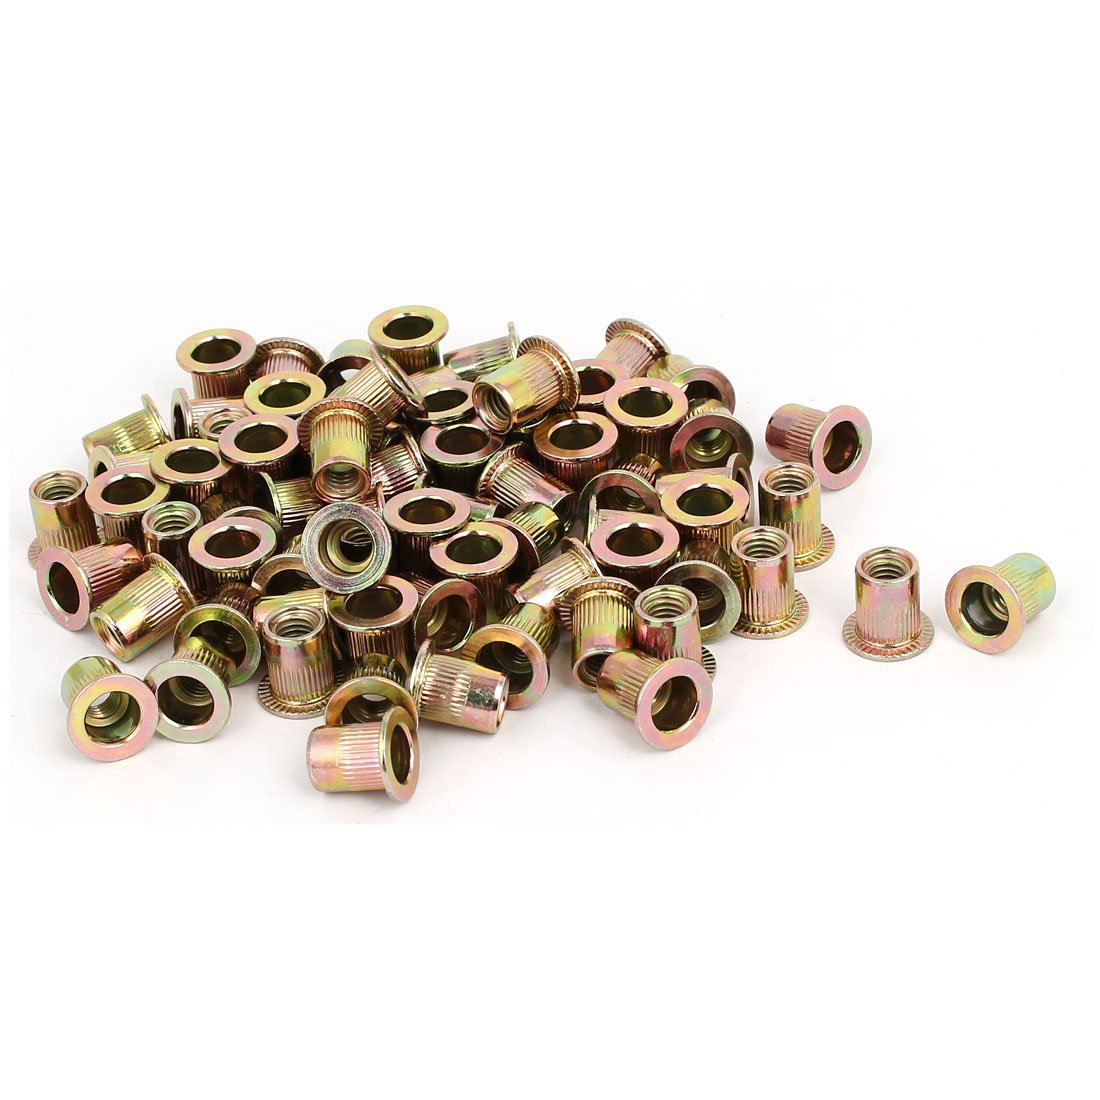 uxcell M6x12mm Zinc Plated Knurled Flat Head Rivet Nuts Insert Nutsert Bronze Tone 70pcs